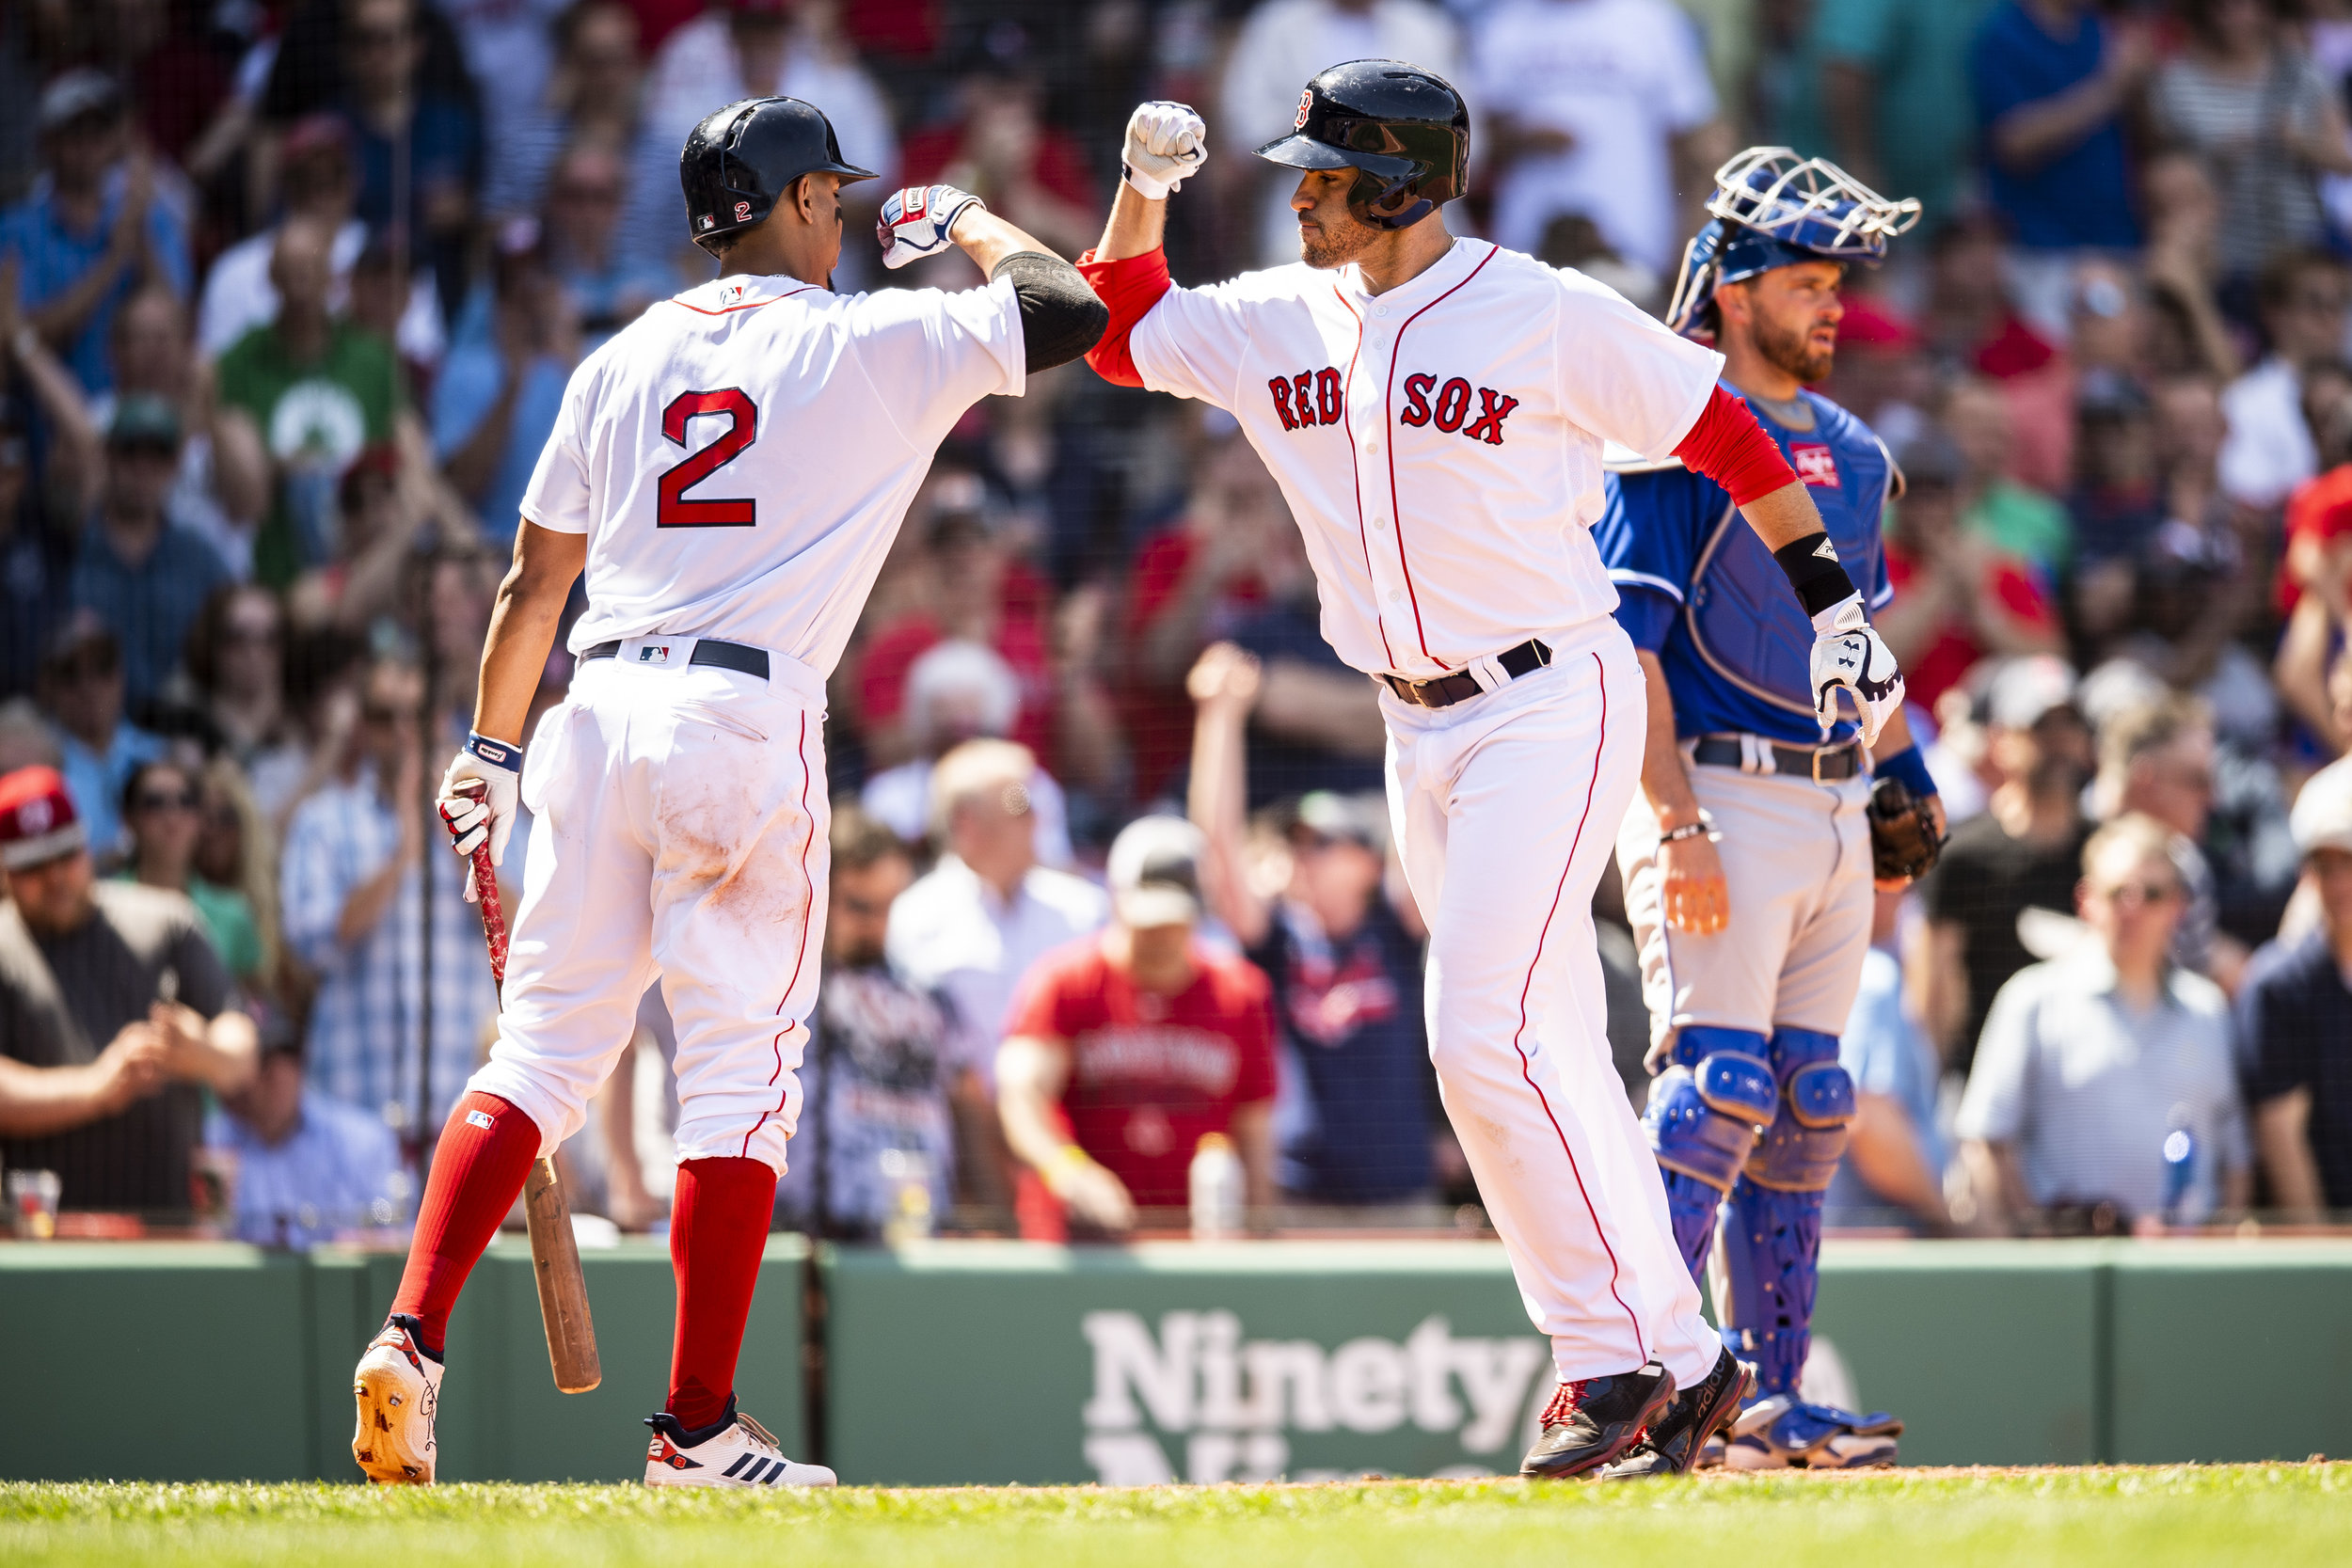 May 2, 2018, Boston, MA: Boston Red Sox designated hitter J.D. Martinez high fives Boston Red Sox shortstop Xander Bogaerts after hitting a home run as the Boston Red Sox face the Kansas City Royals at Fenway Park in Boston, Massachusetts Wednesday, May 2, 2018. (Photo by Matthew Thomas/Boston Red Sox)